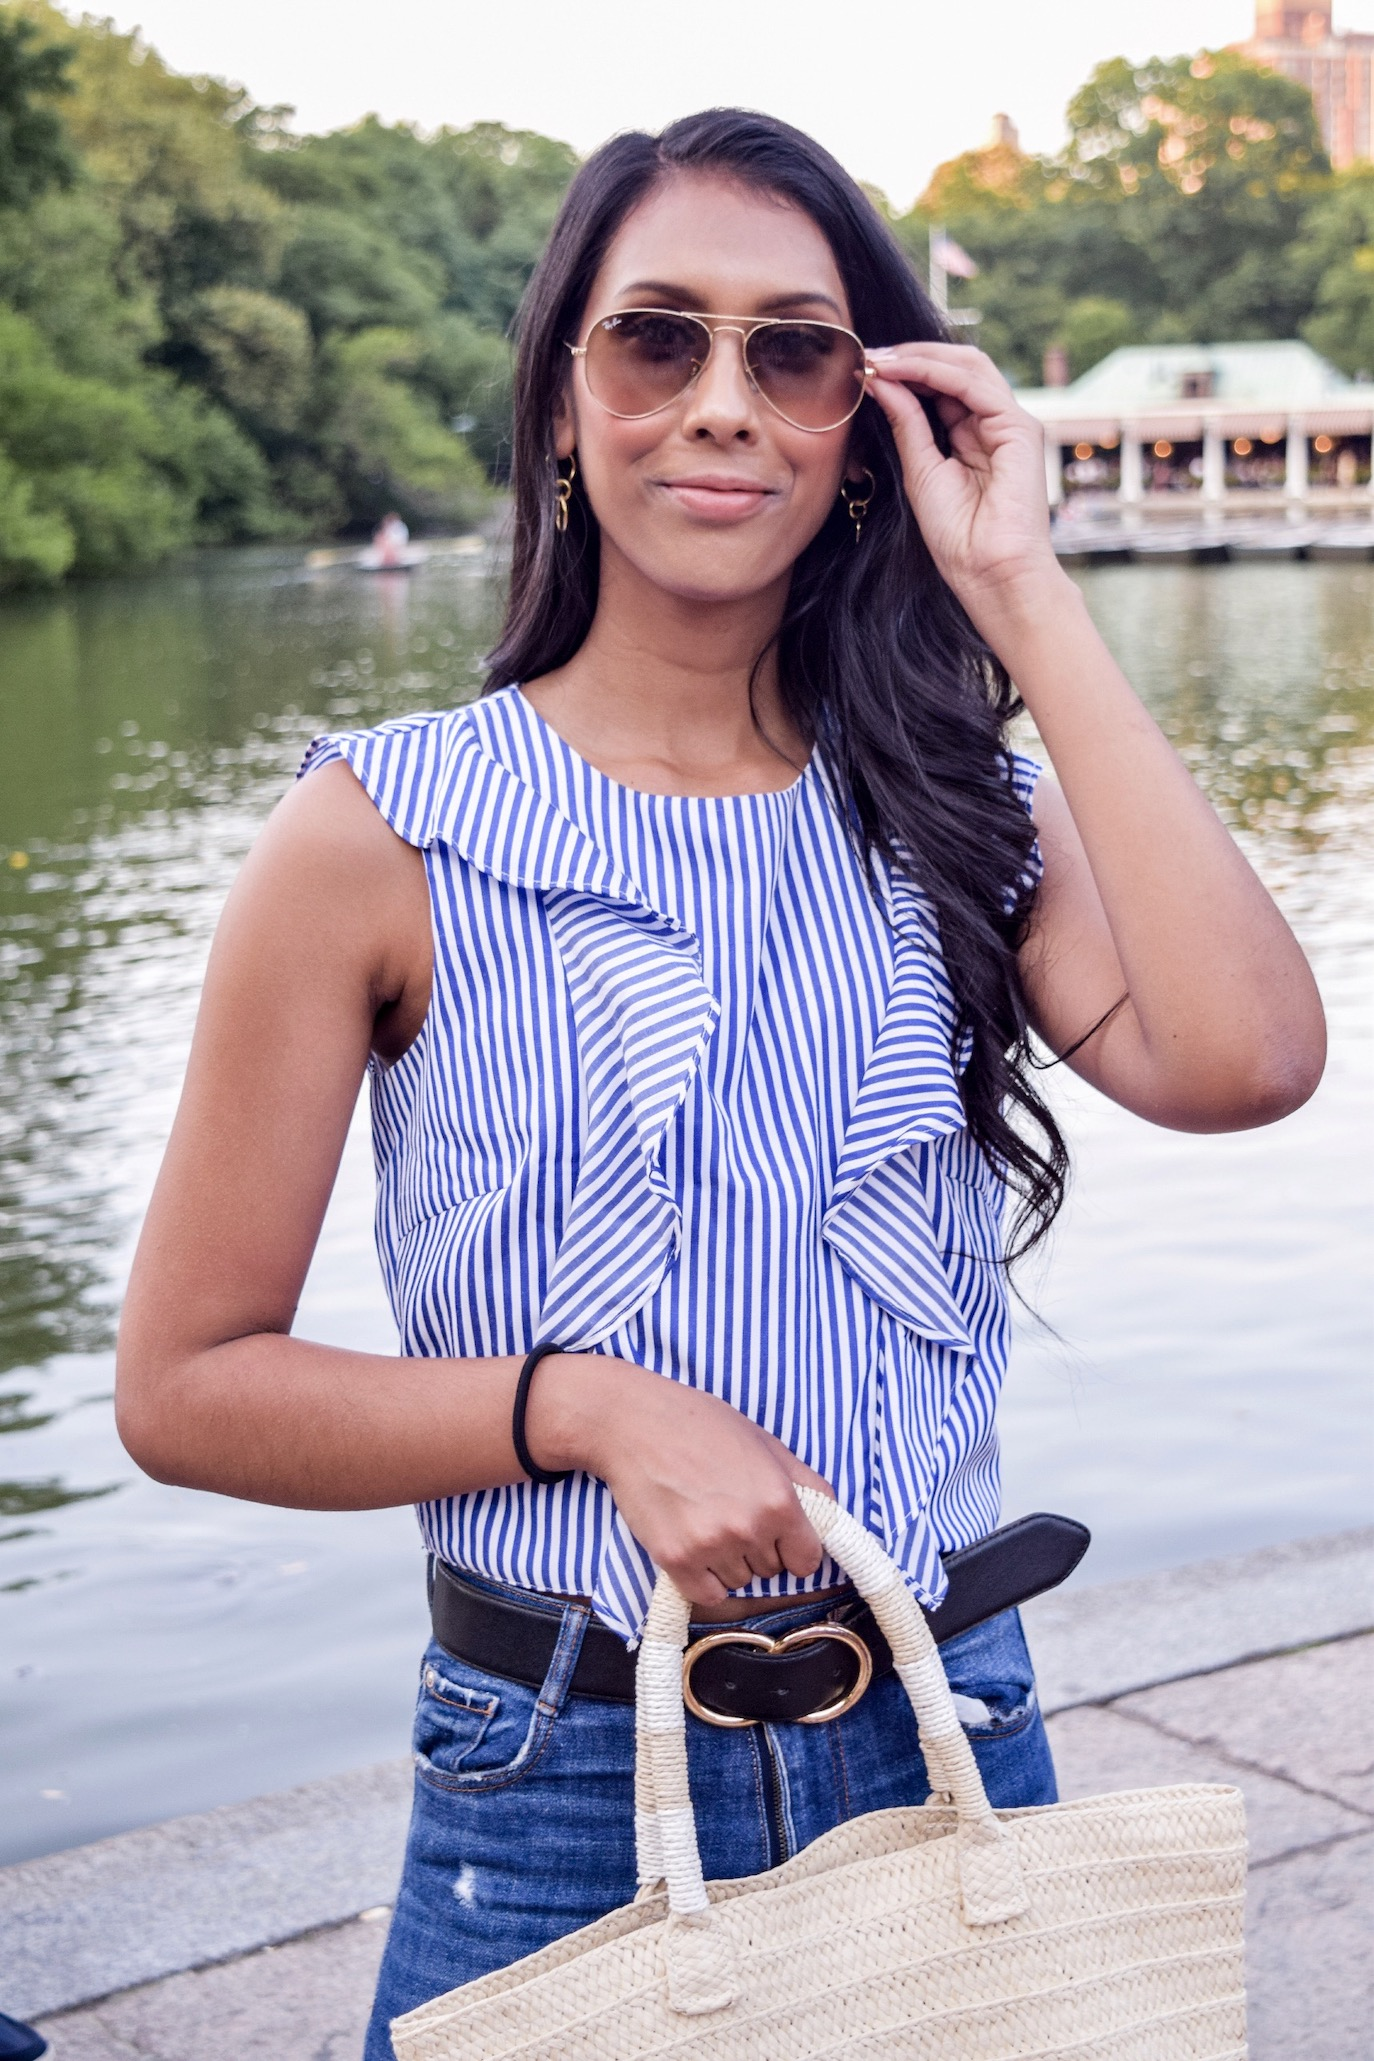 Business casual outfit idea // A Week Of Conscious Trend-Forward Outfits With Sabrina Ramkhelawan From Flaunt Your Fancy on The Good Trade